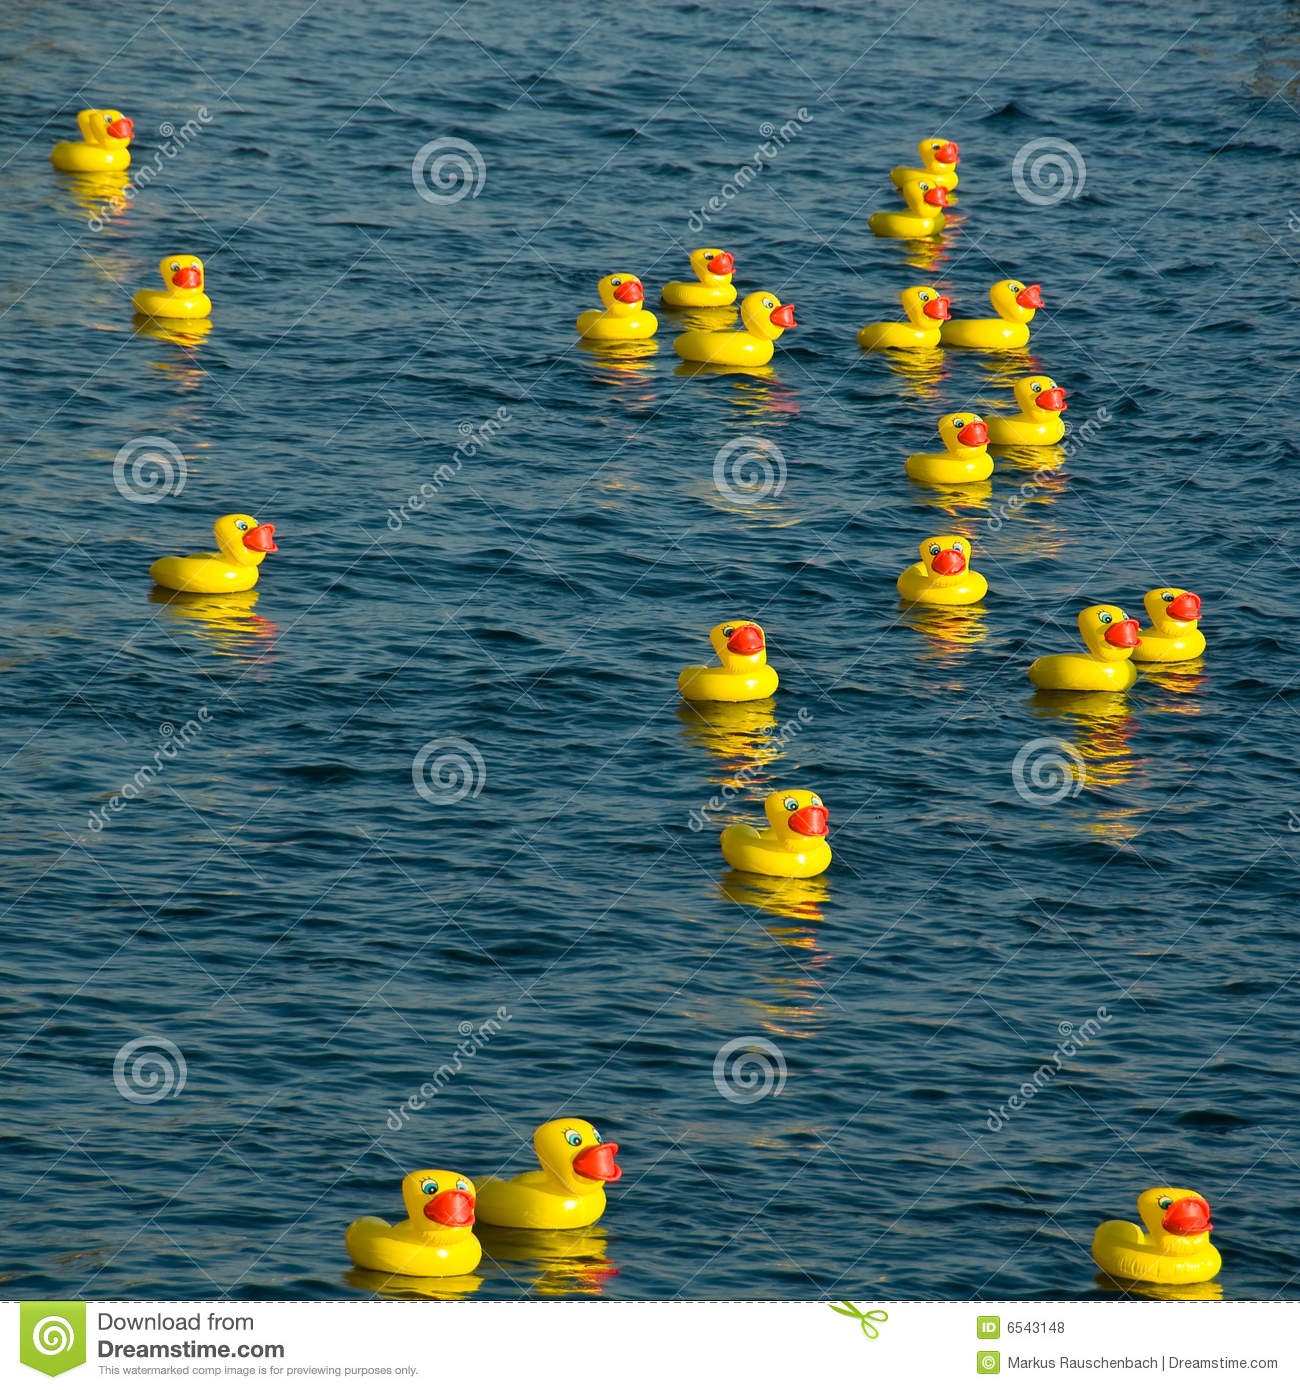 Many Yellow Rubber Ducks Floating In Water Stock Photo - Image of ...